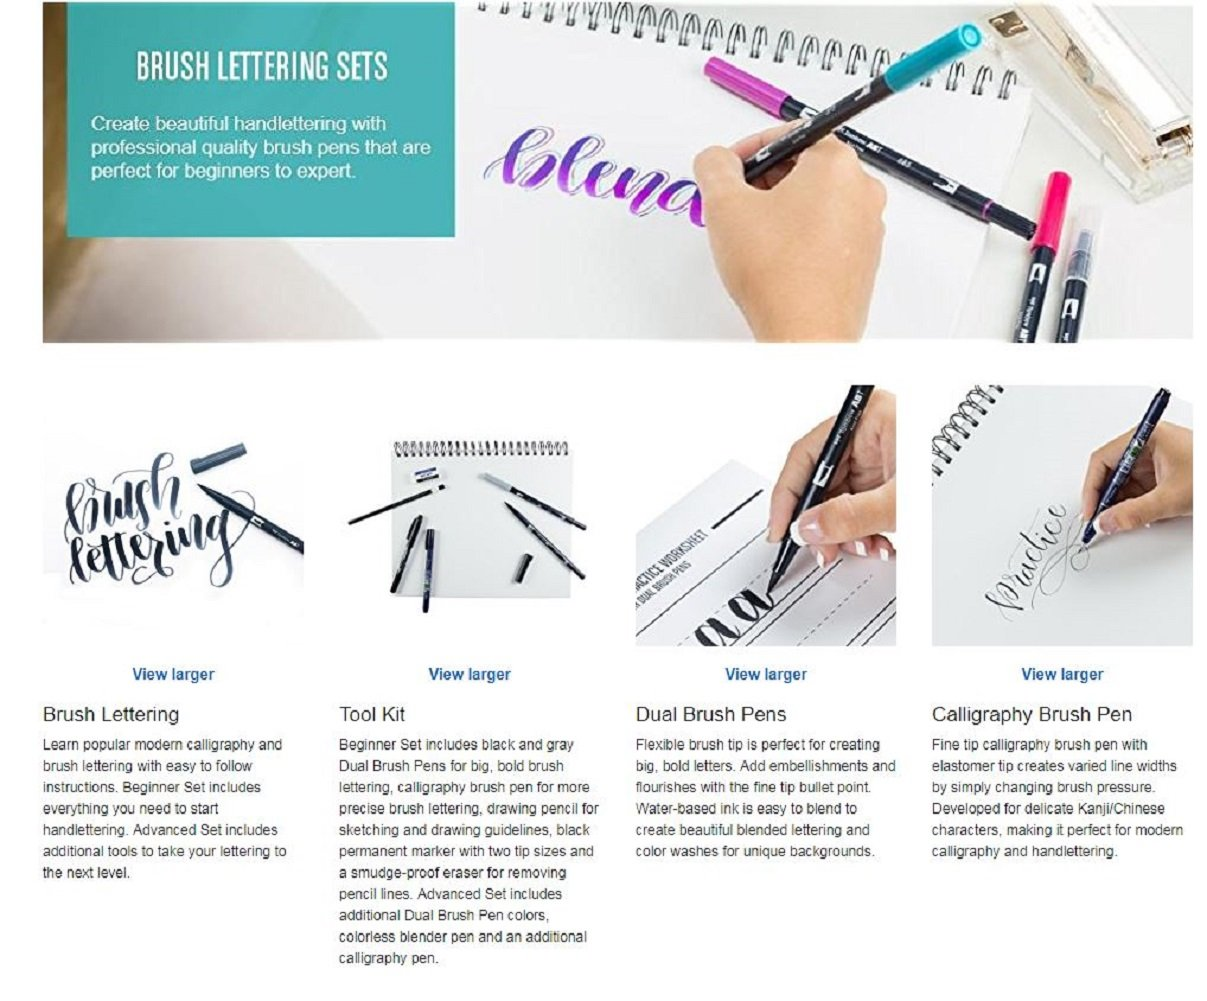 Lettering kit : Tombow Lettering Set Marker & Lettering and Modern Calligraphy: A Beginner's Guide: Learn Hand Lettering and Brush Lettering by American Tombow (Image #7)